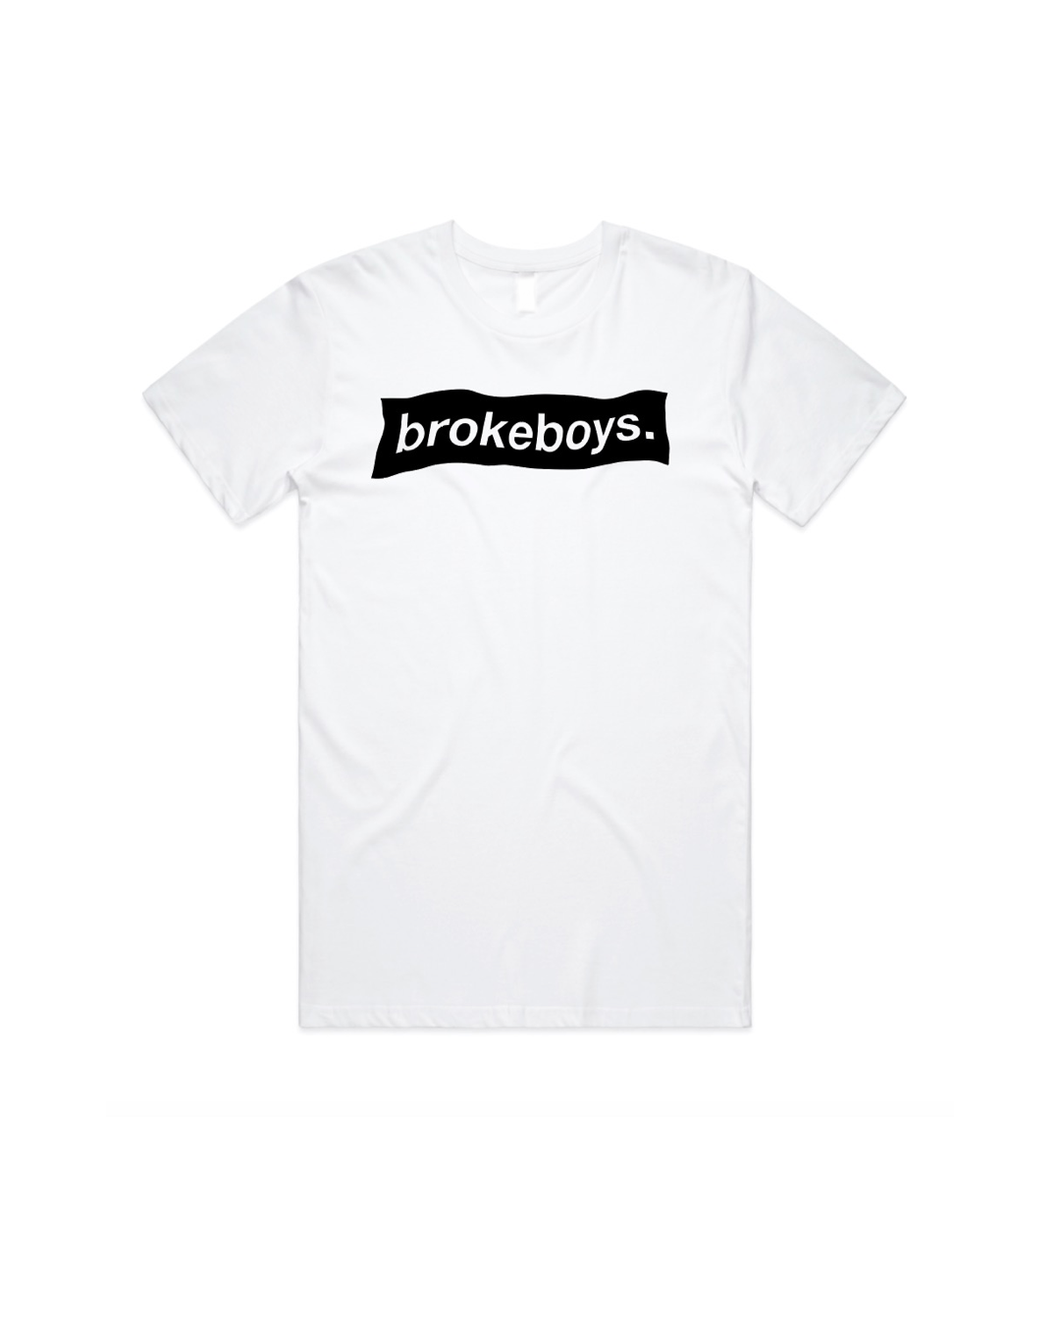 brokeboys. repurposed white shirt